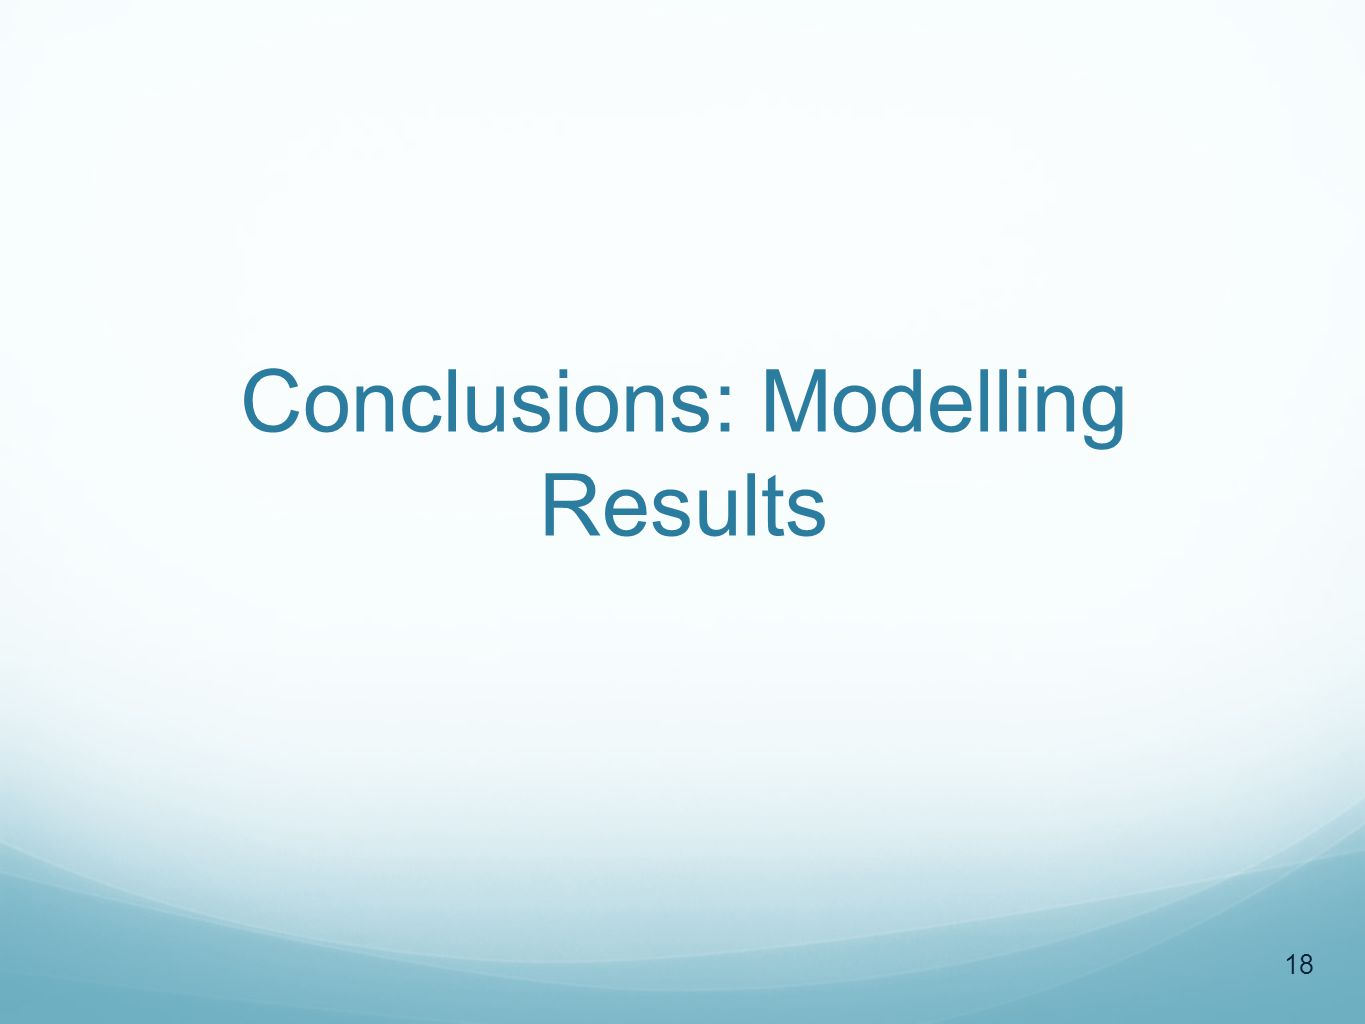 Conclusions: Modelling Results